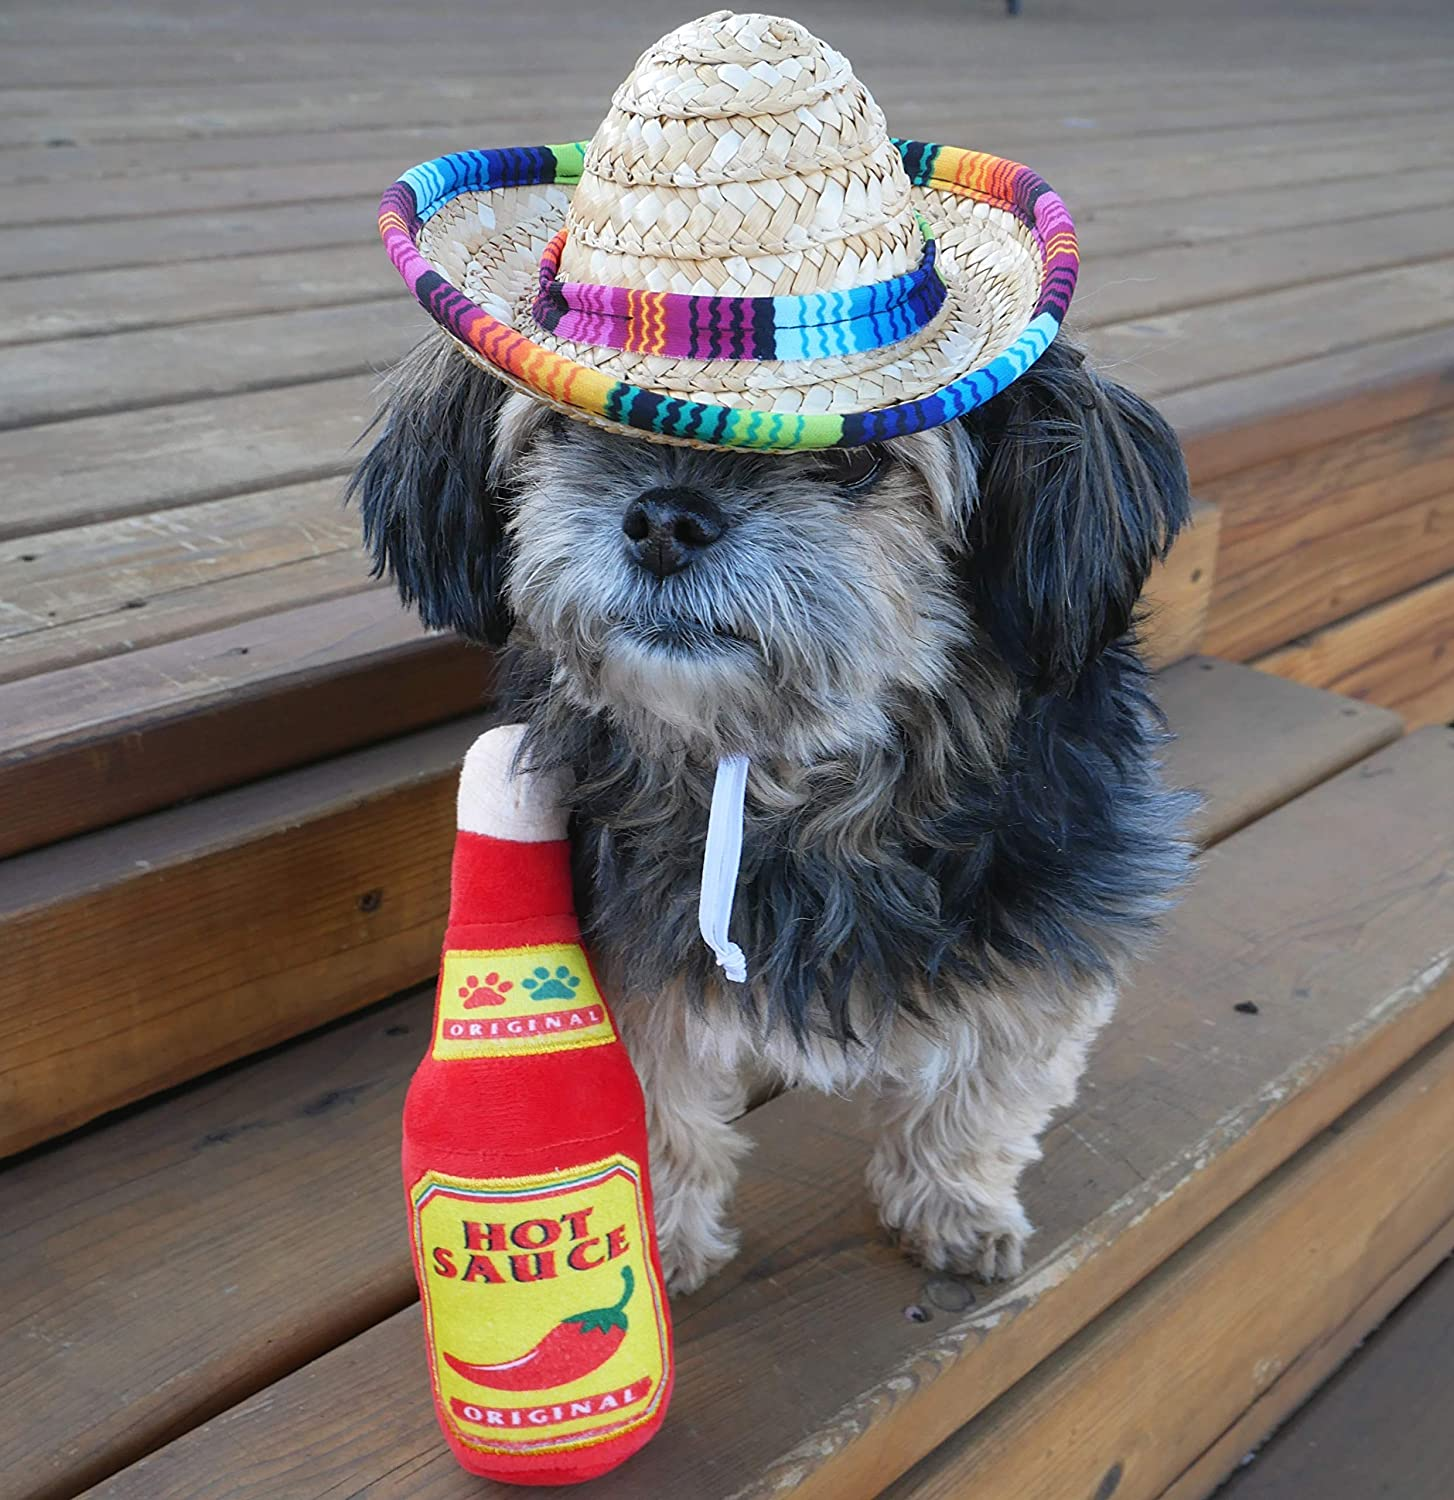 Dog Sombrero and Hot Sauce Plush Toy Pack - Funny Dog Costume and Chew Squeak Toy - Chihuahua Clothes - Mexican Party Decorations : Kitchen & Dining